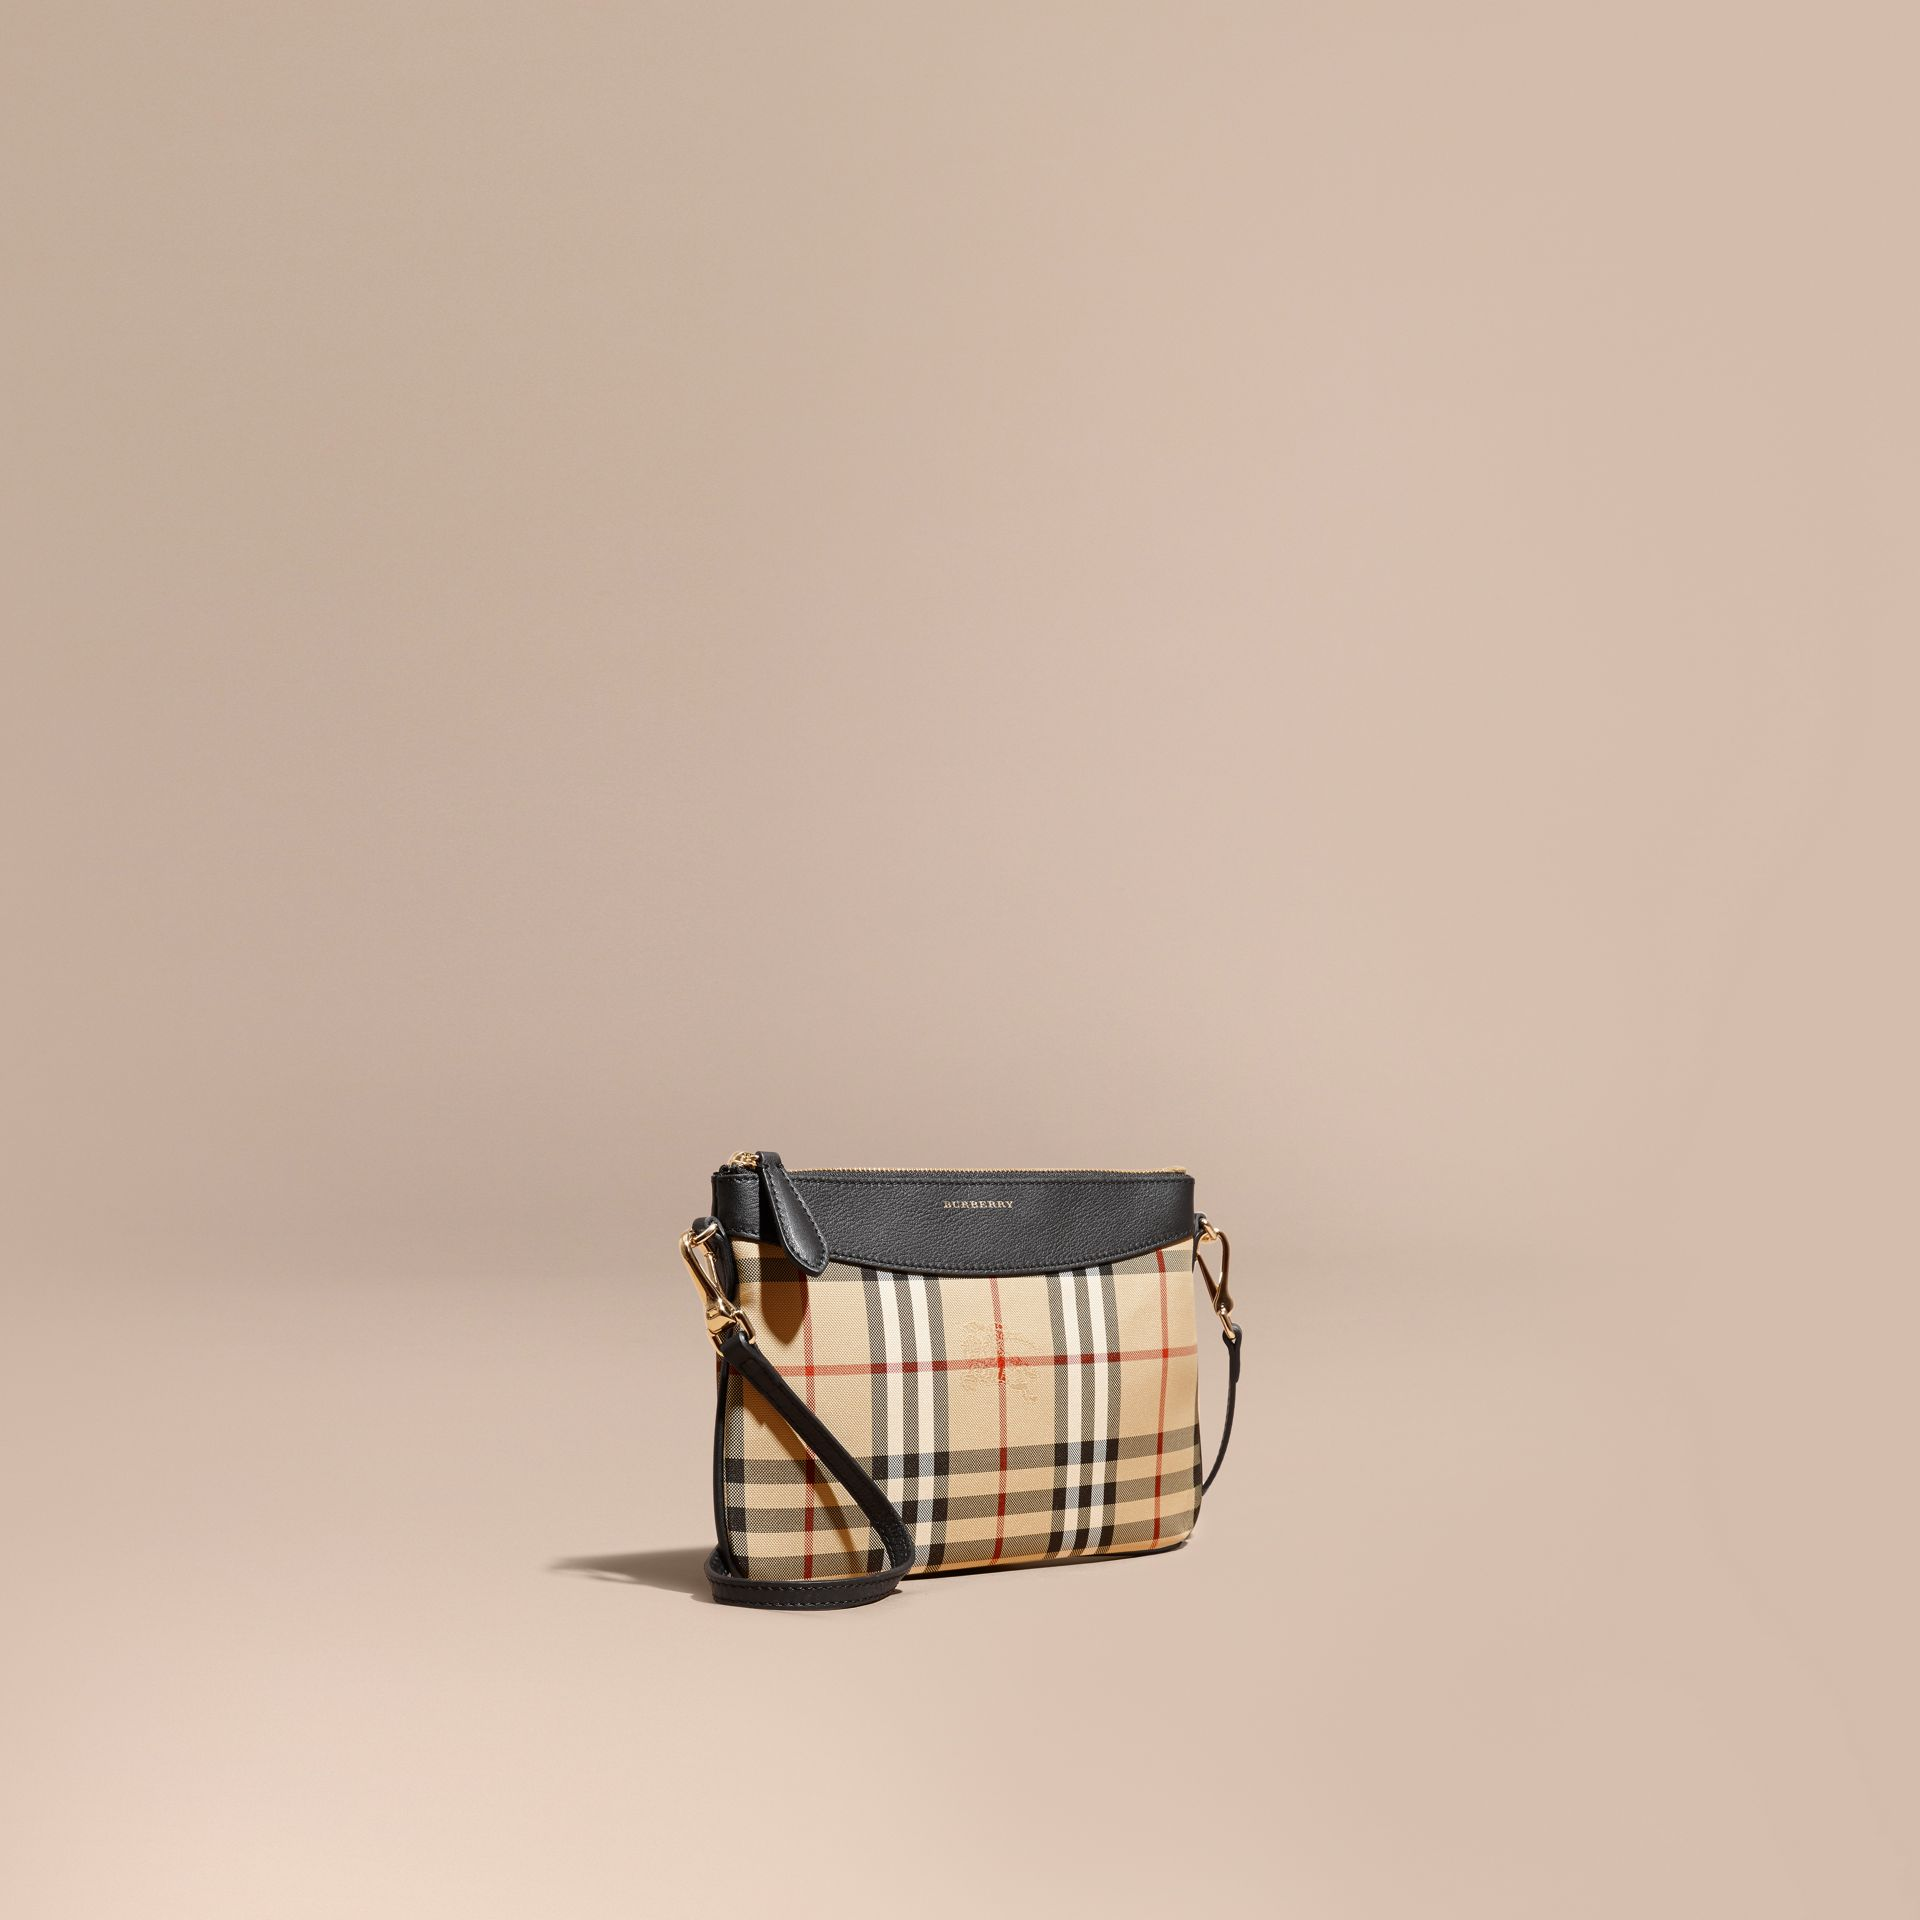 Black Horseferry Check and Leather Clutch Bag Black - gallery image 1